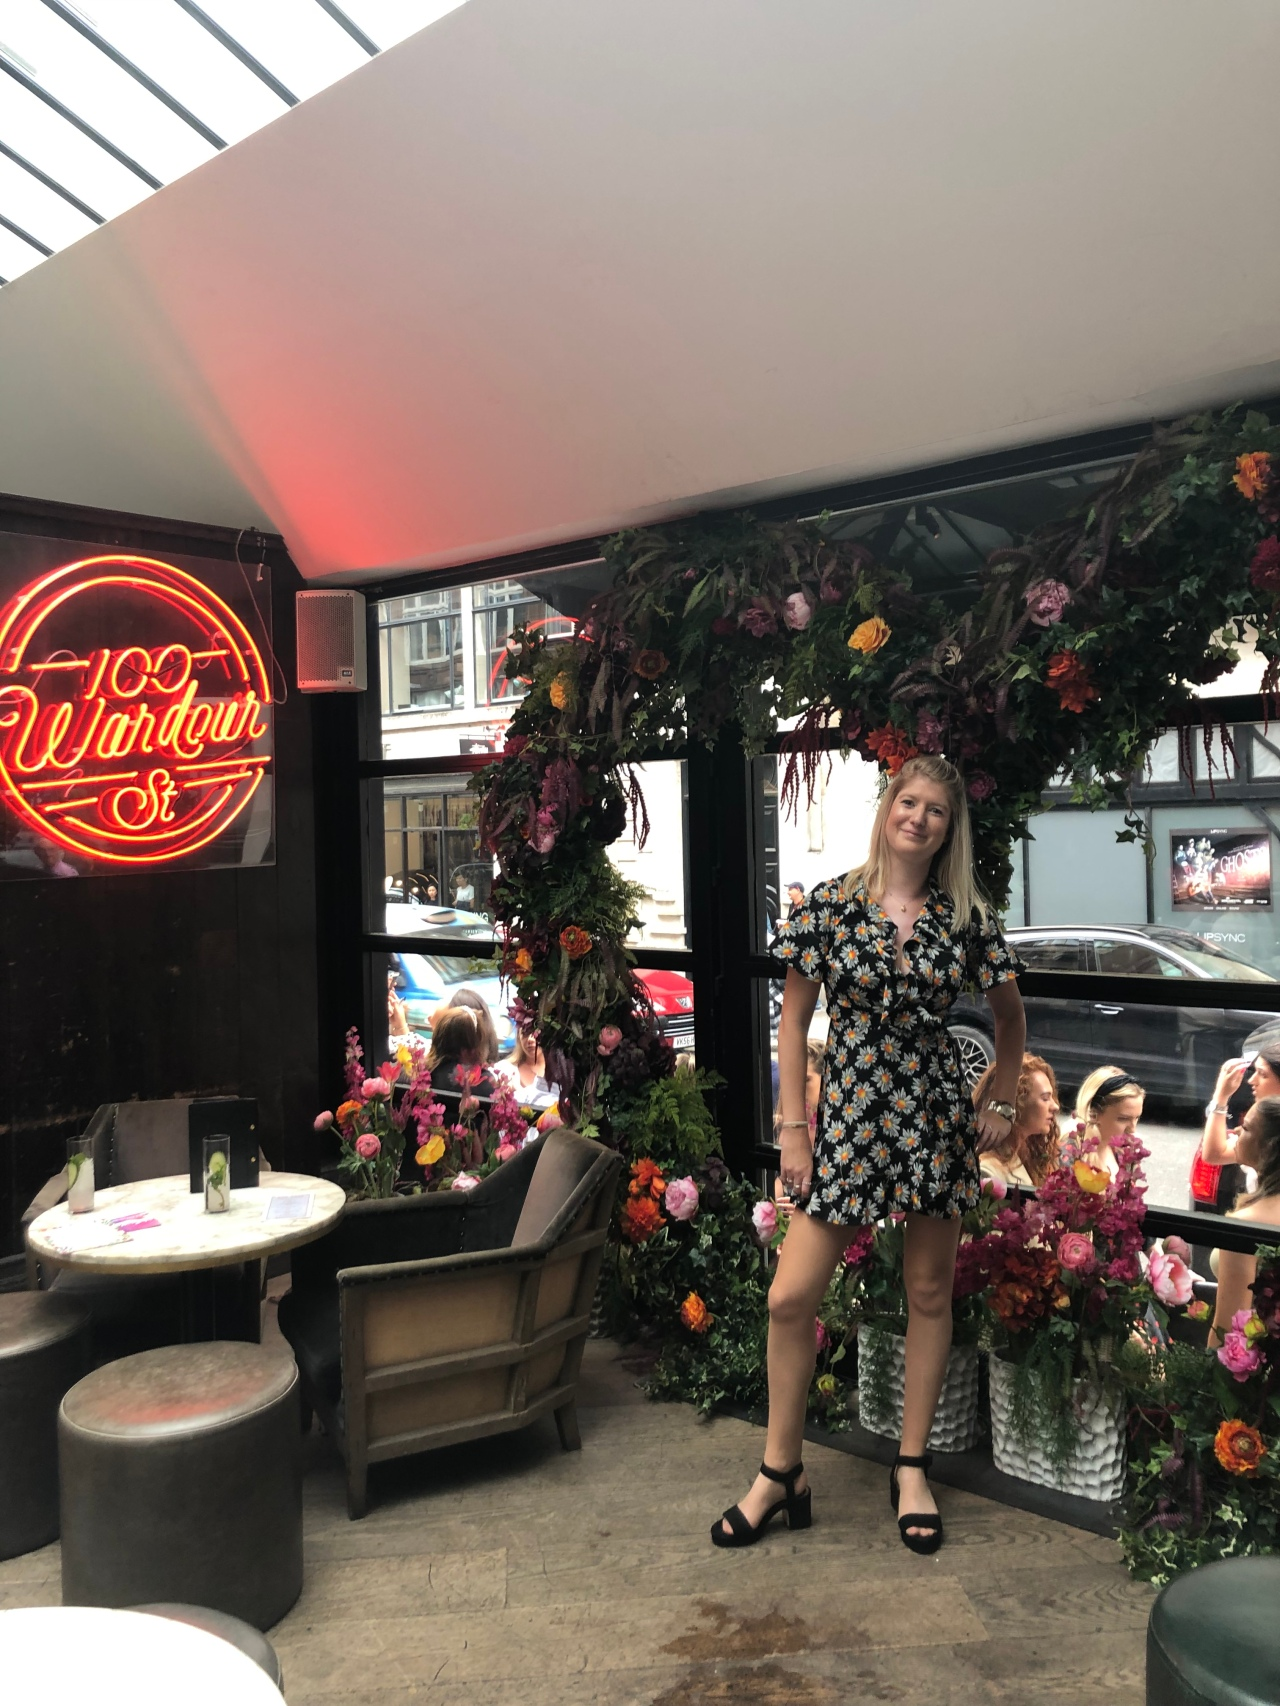 100 Wardour Street bottomless brunch